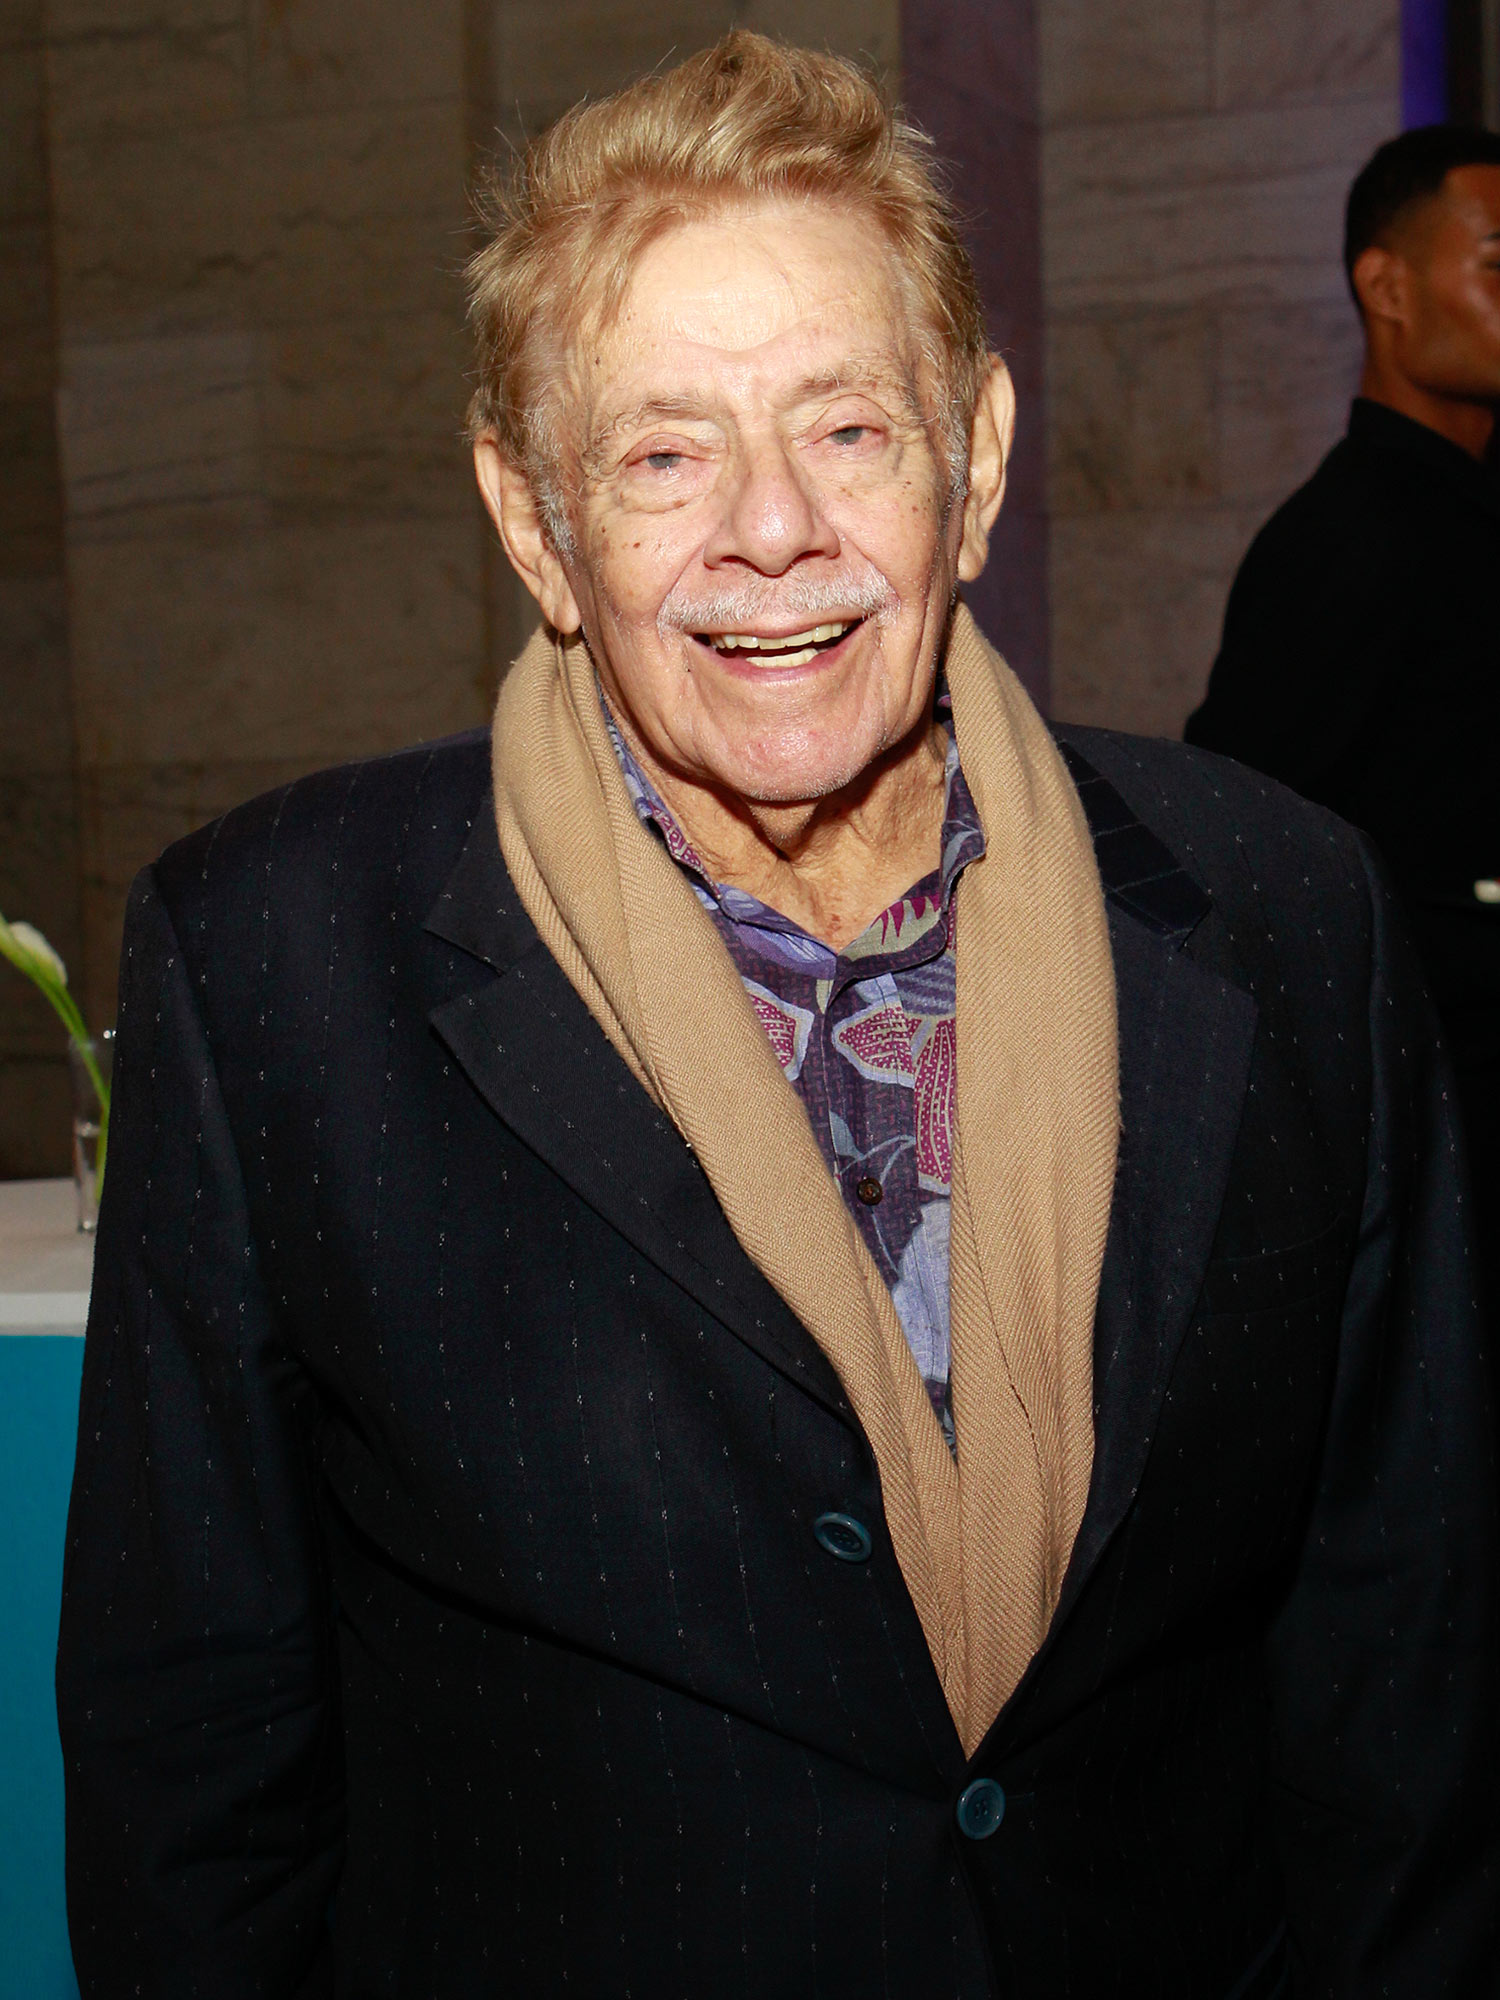 Jerry Stiller in his old age smiling and giving a relax pose